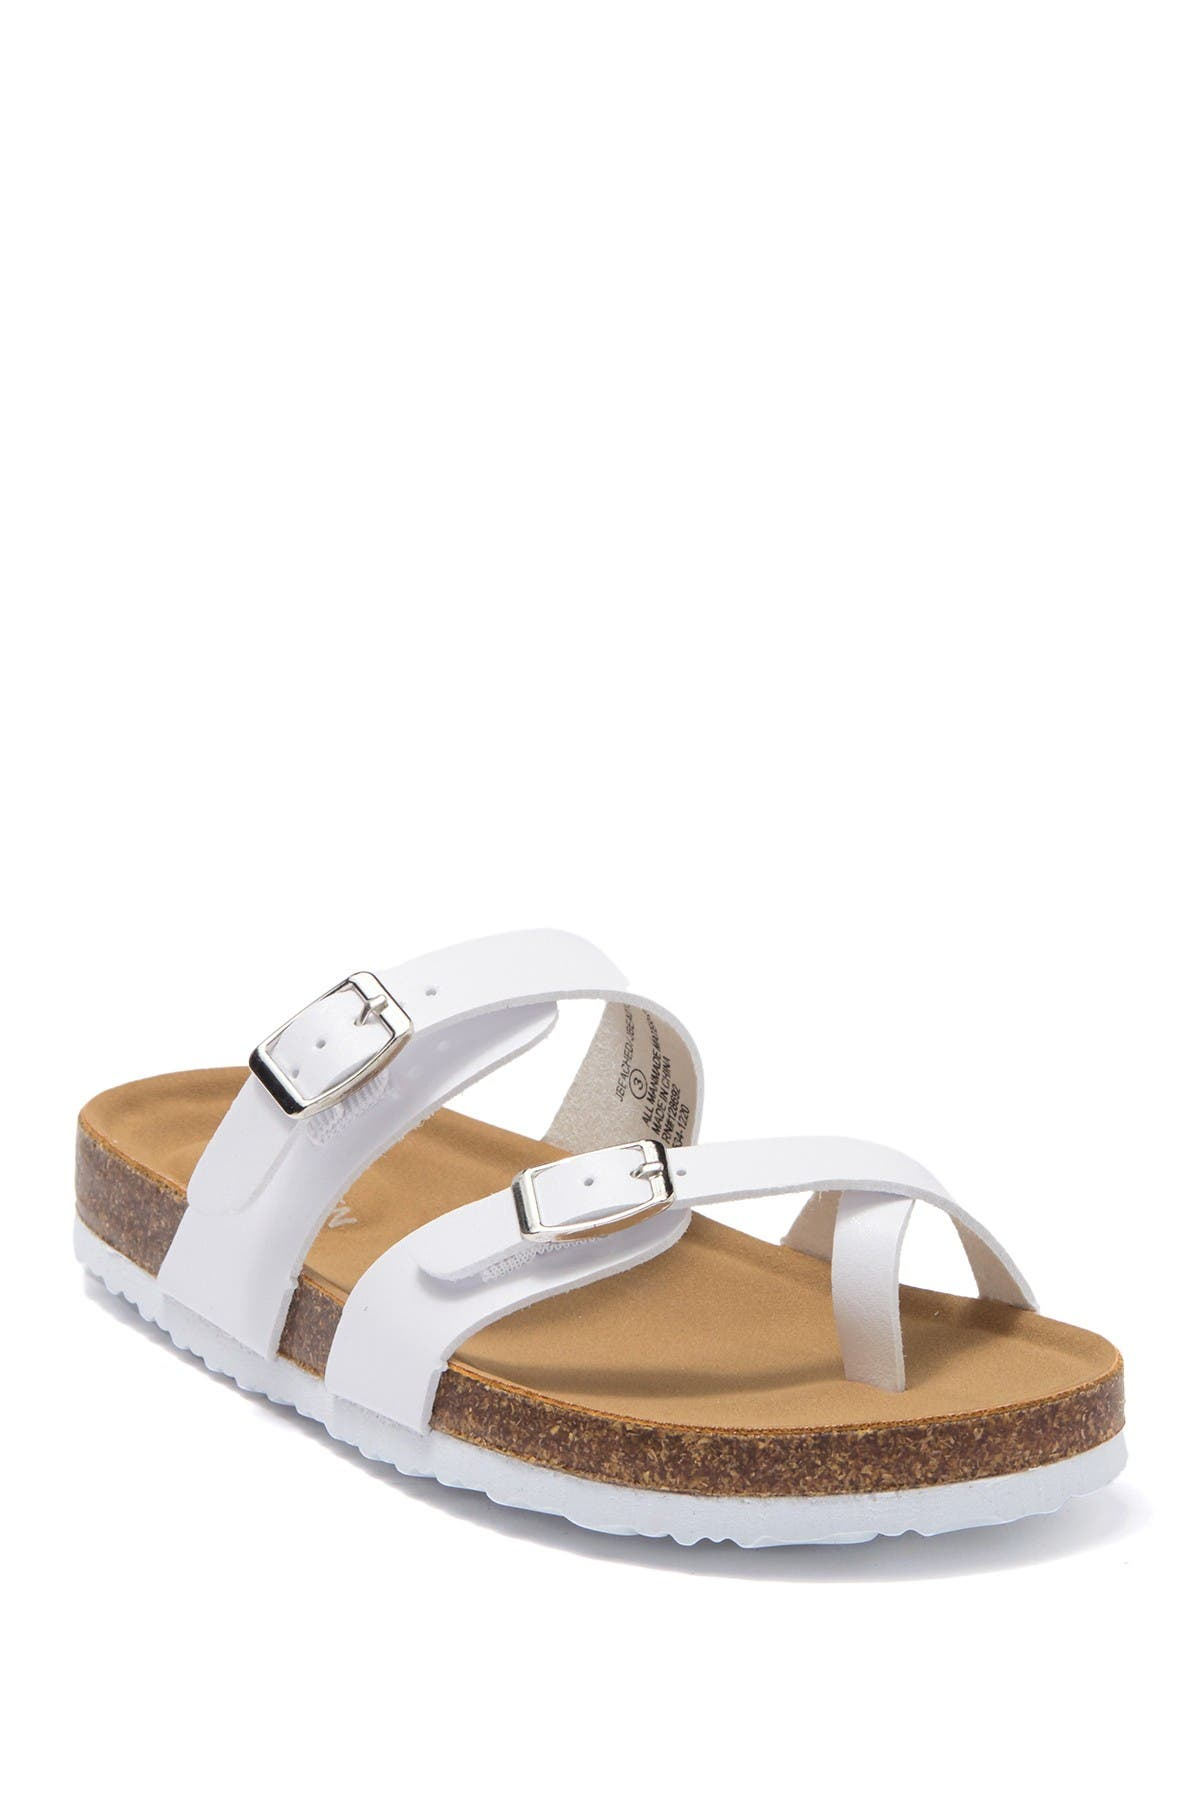 Image of Steve Madden Beached Slide Sandal